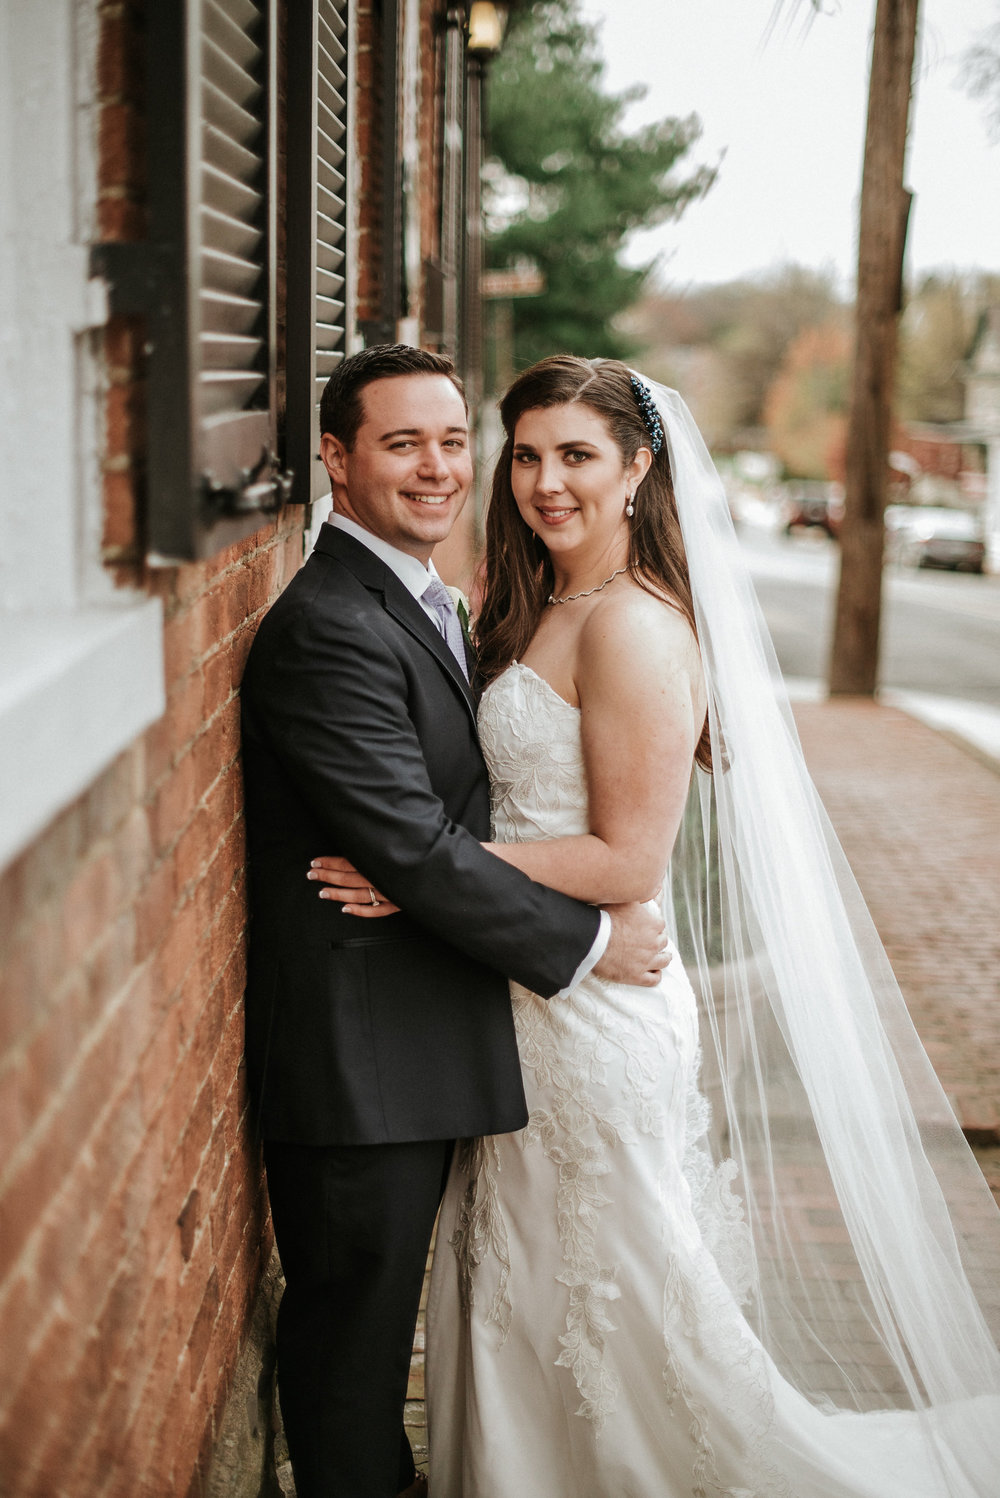 Groom and bride leaning against brick wall